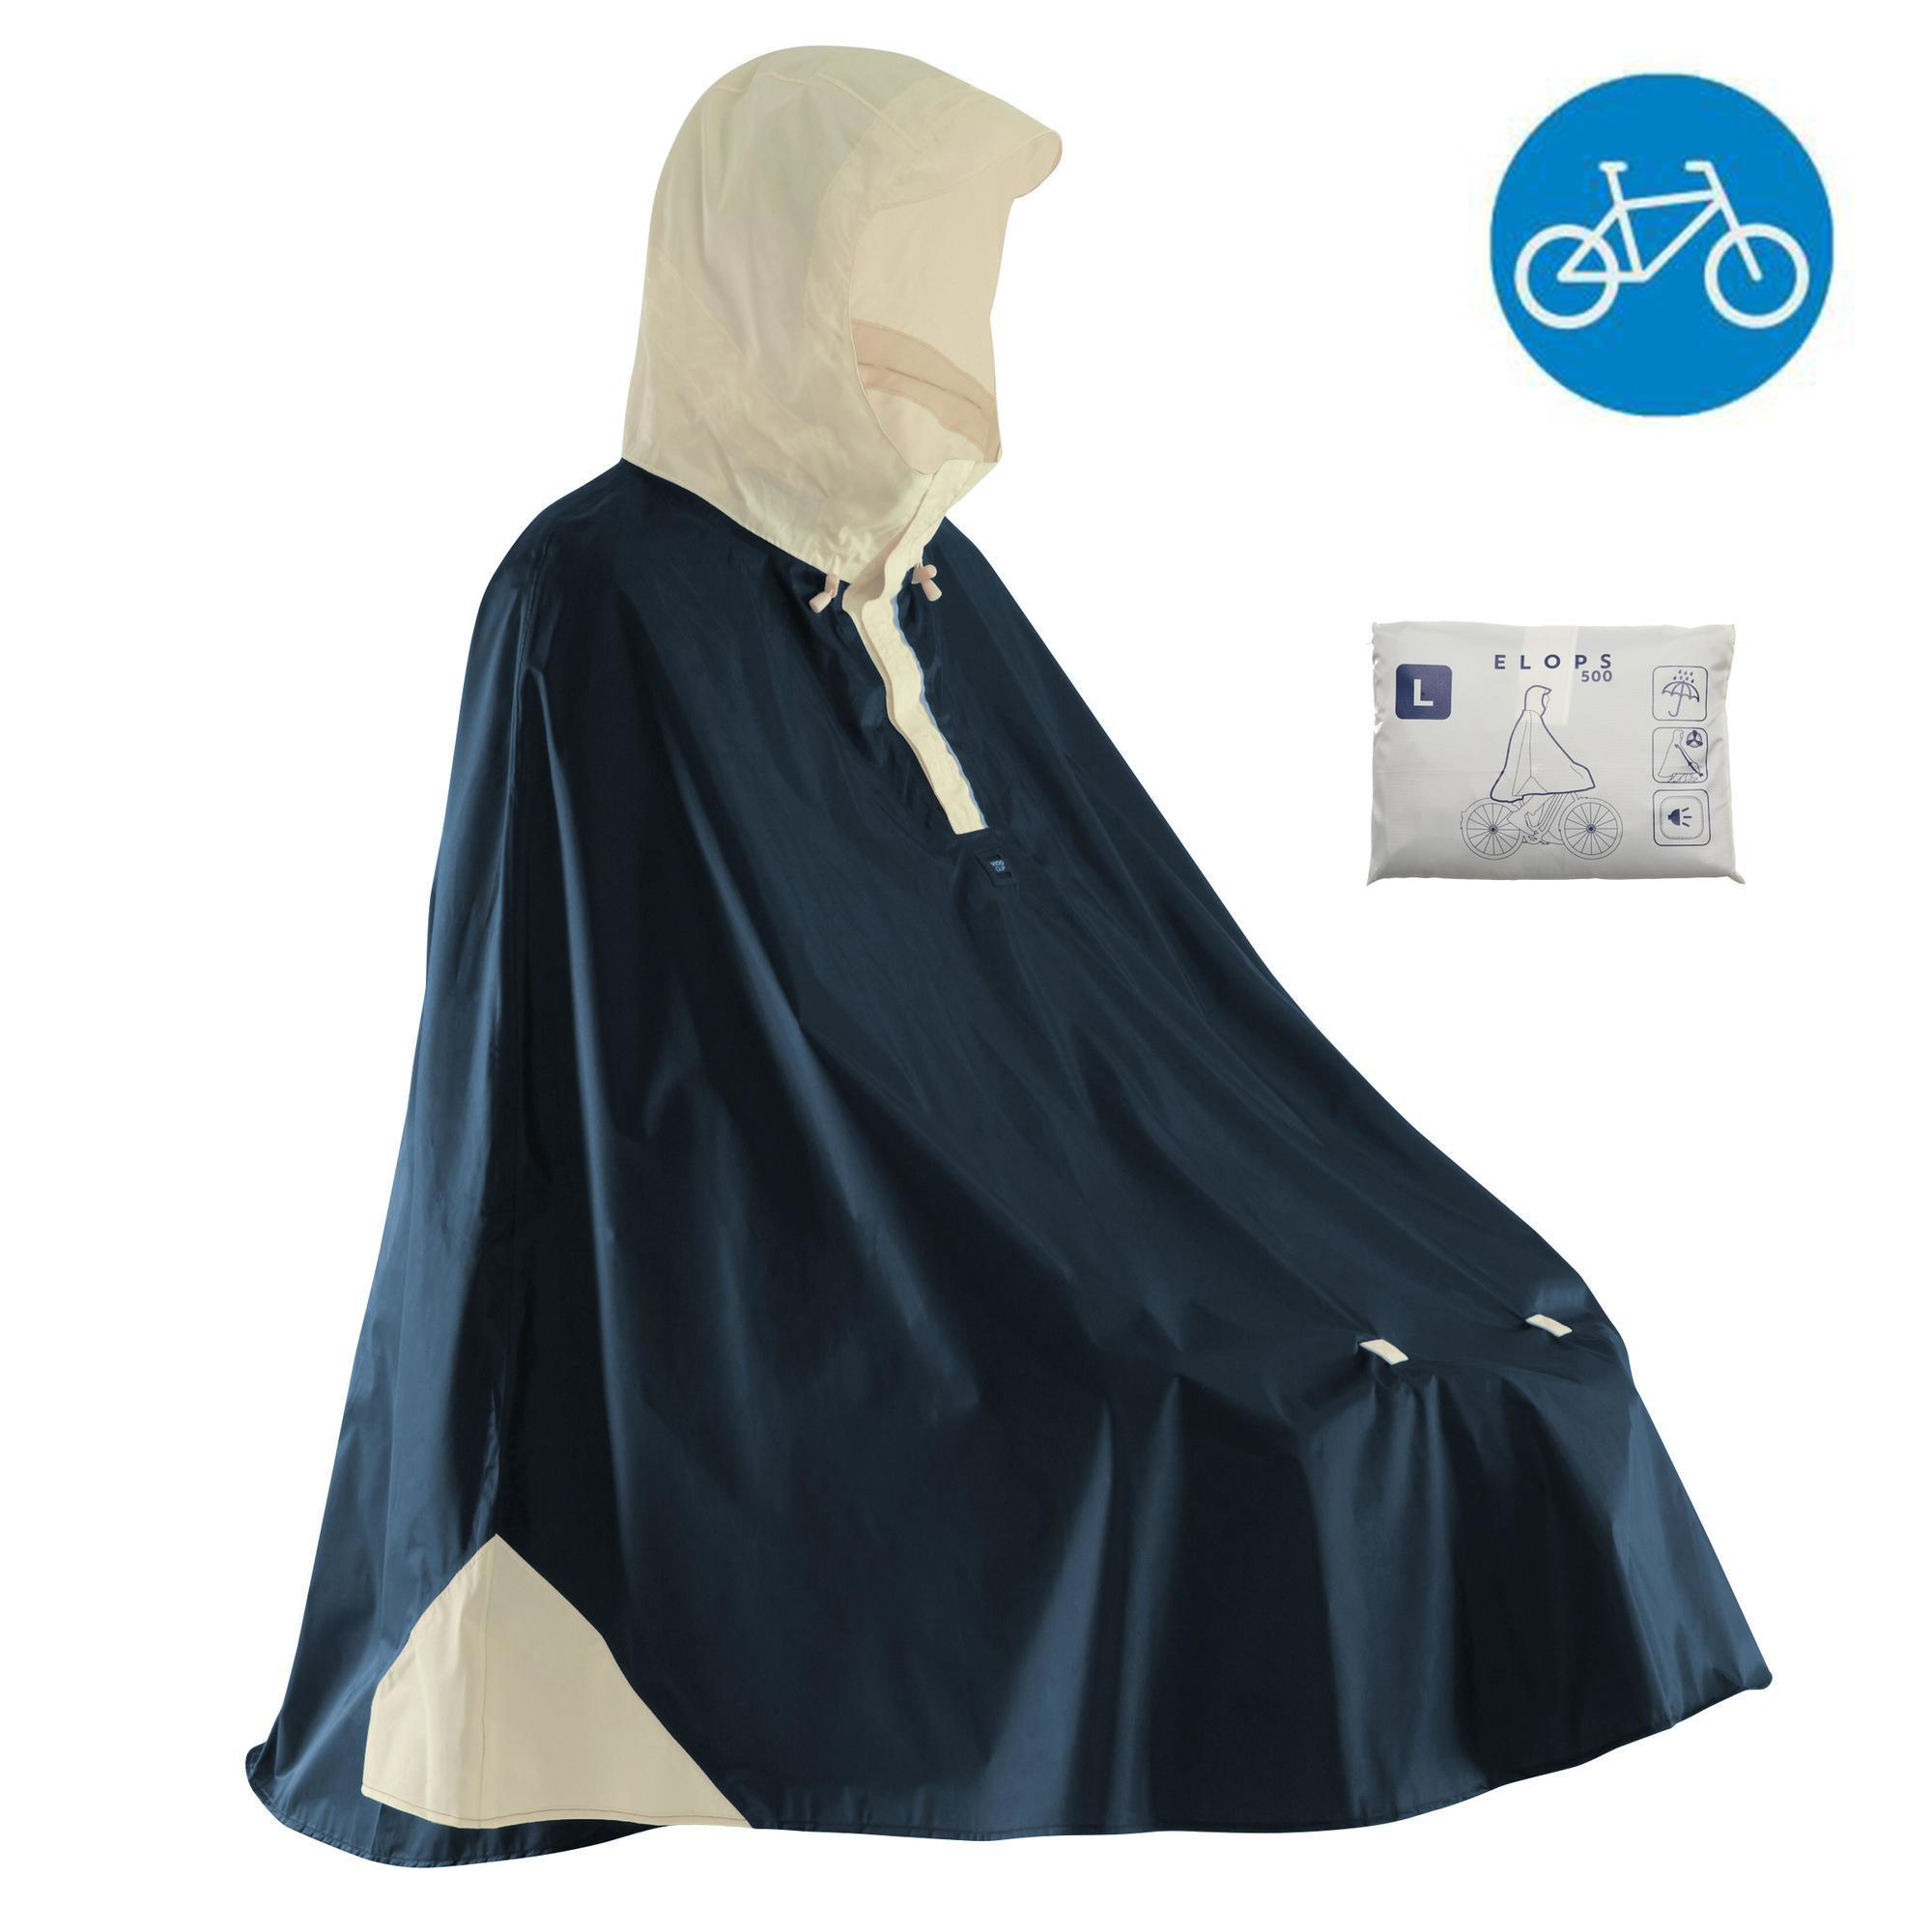 Fahrrad-Regenponcho City 500 navy/beige   Bekleidung > Pullover > Ponchos & Capes   B'twin